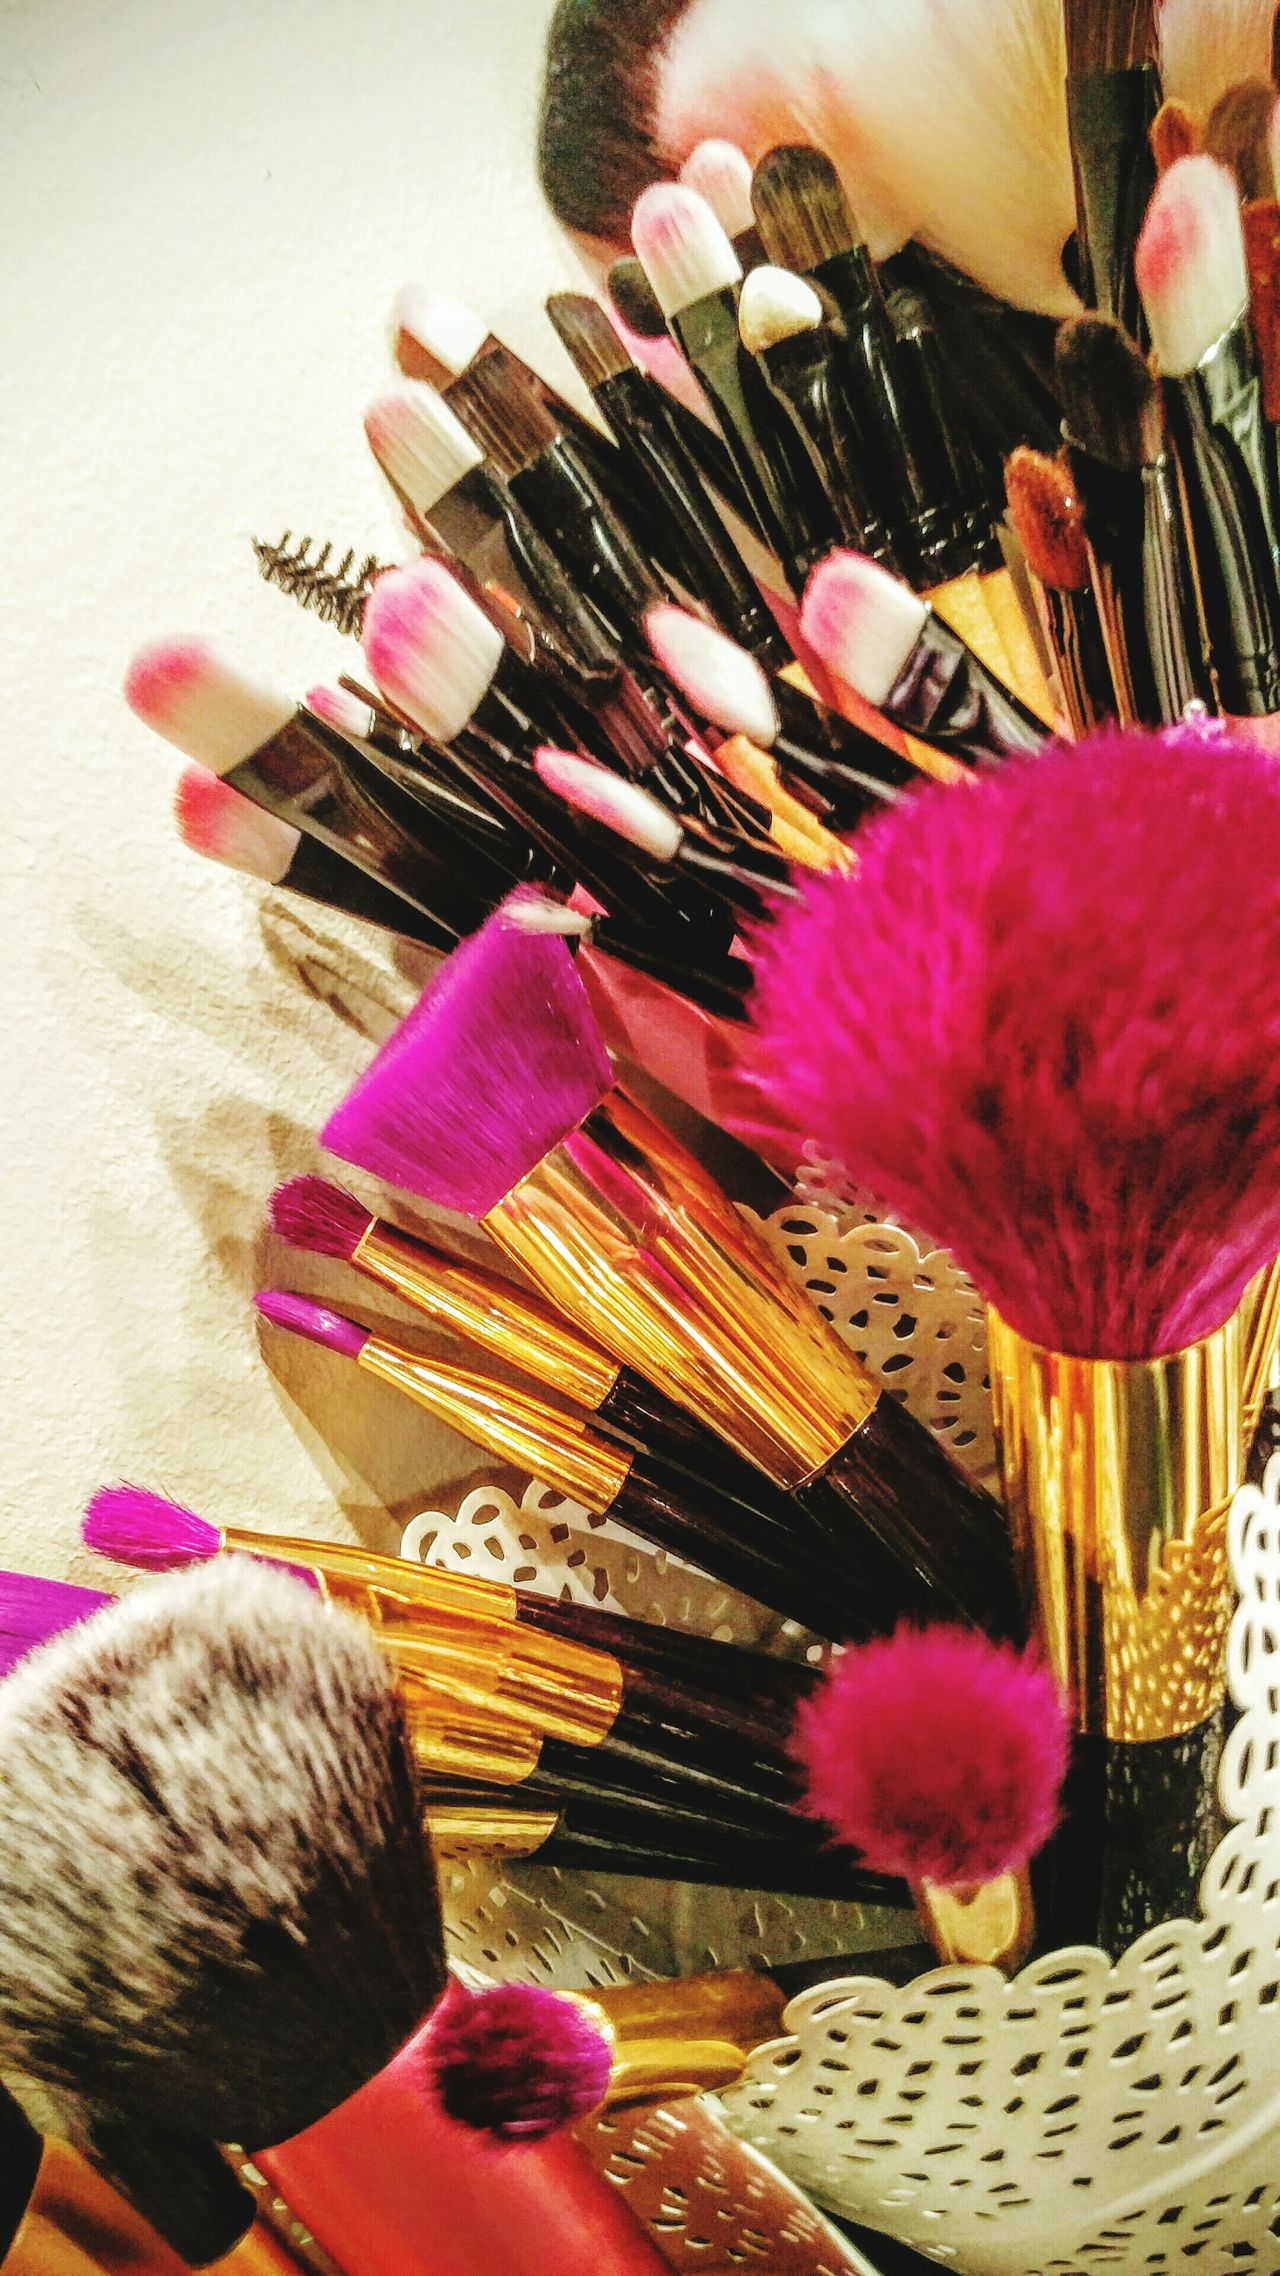 My Cute Brushes ❤ Makeuptool Iloveit Oneplus2photographie Oh Yeeeaaa ! Makeupaddict